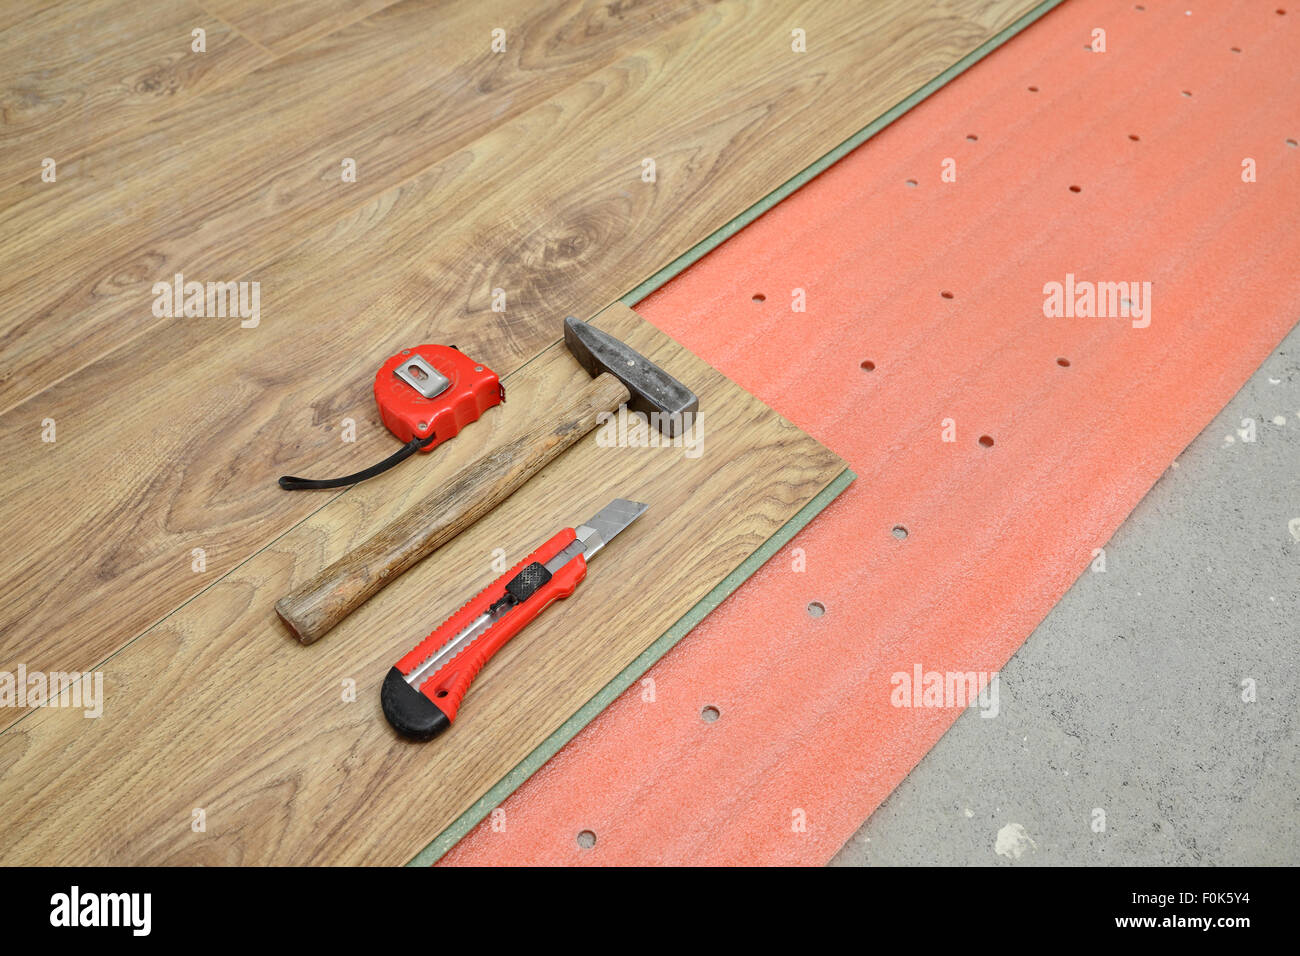 Flooring of room, laminate, foam and tools, hammer, meter, cutter - Stock Image